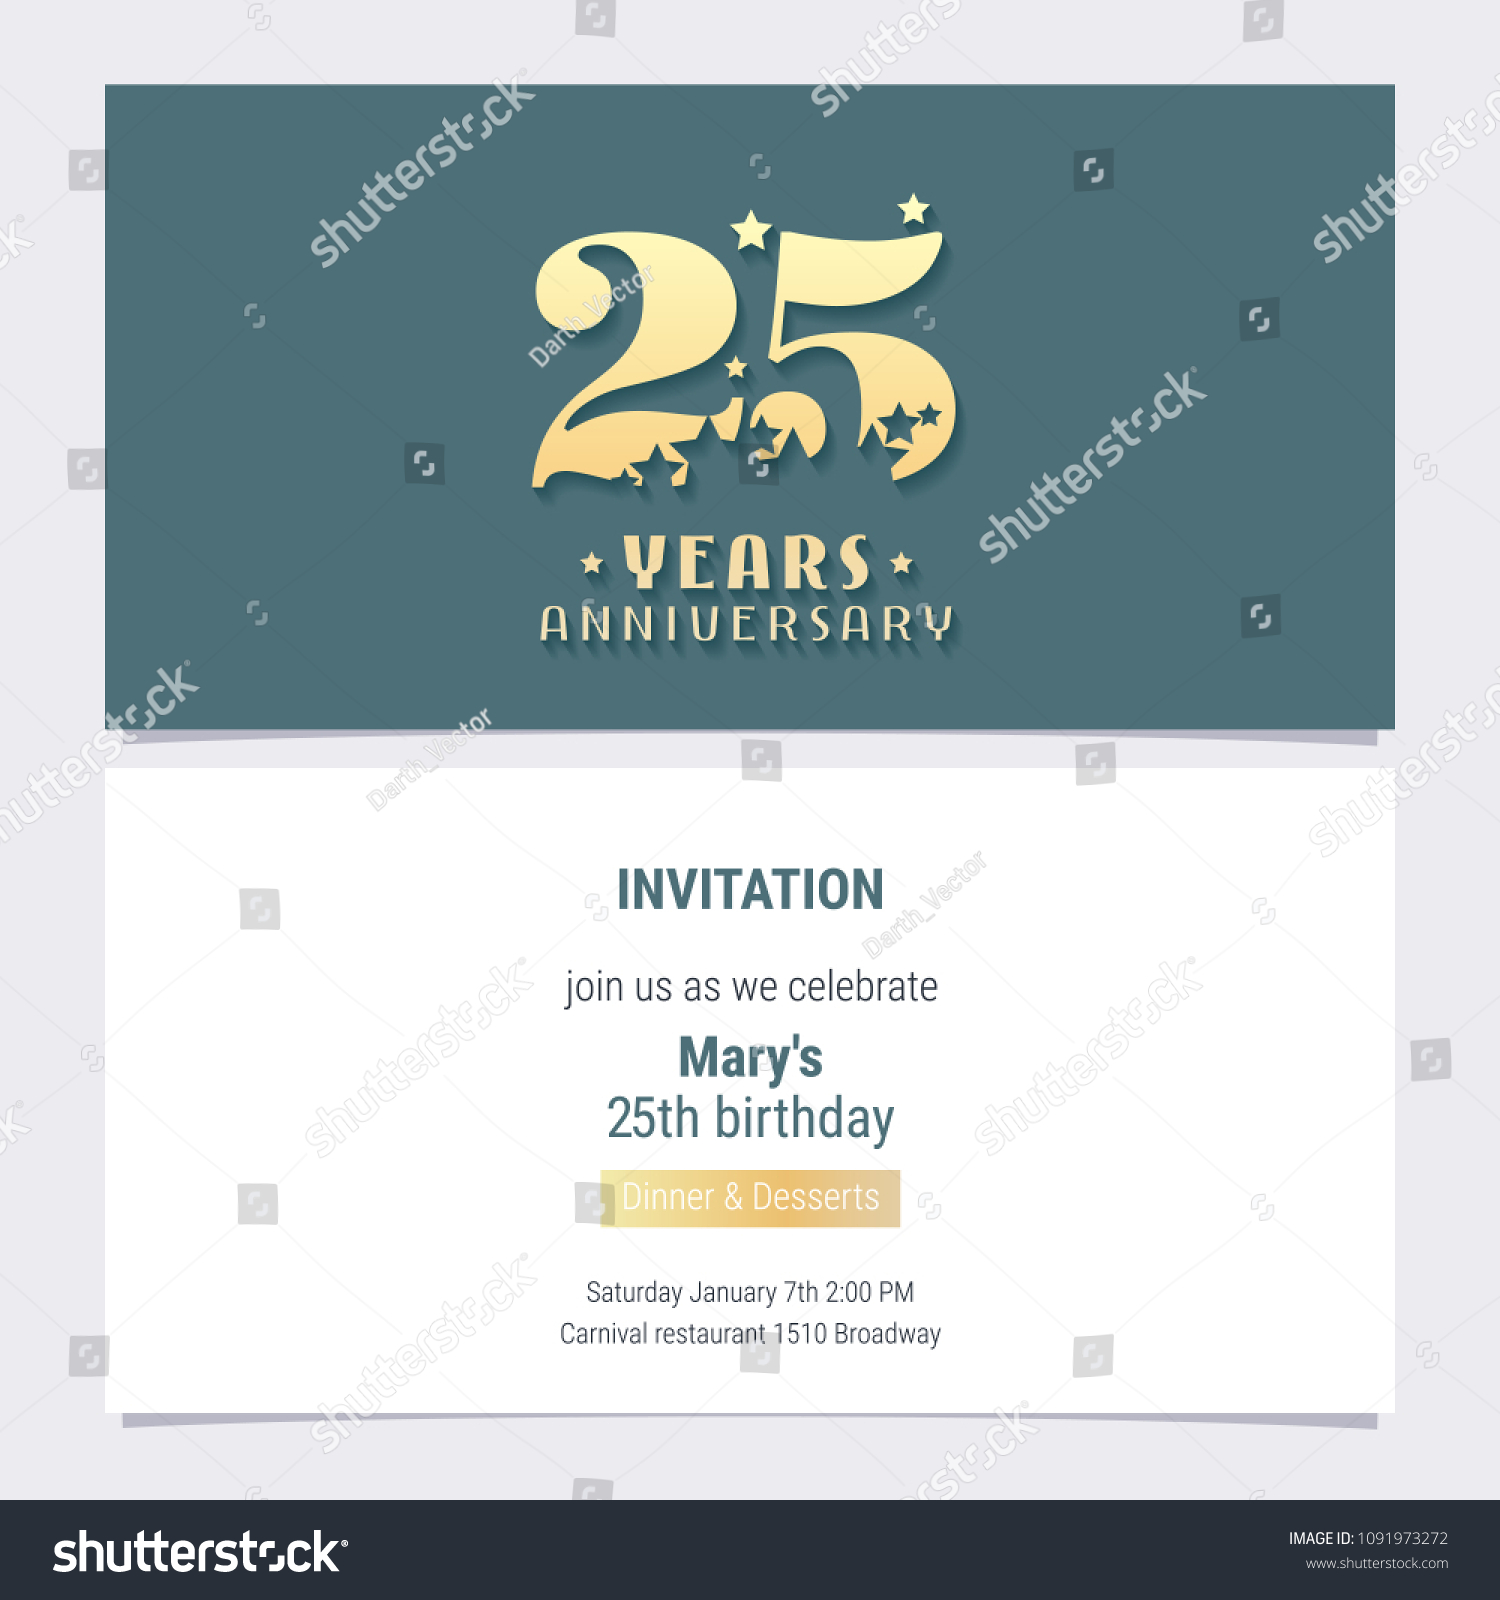 25 Years Anniversary Invitation Vector Illustration Template Design Element For 25th Birthday Card Party Invite